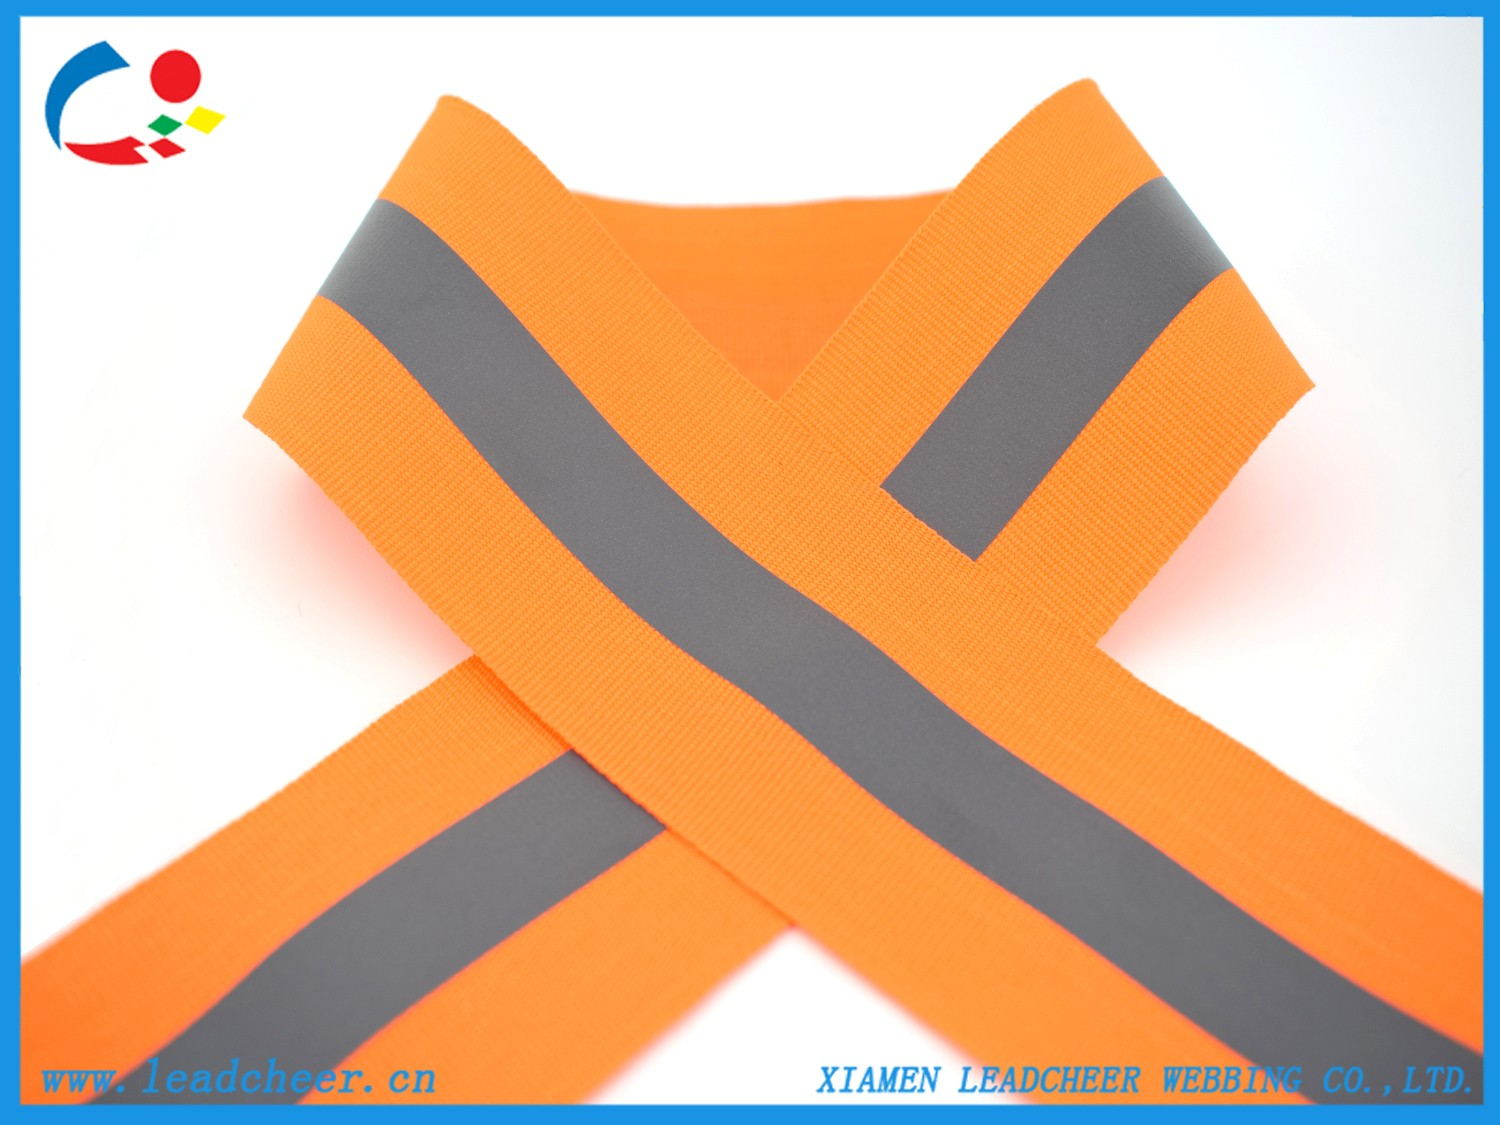 High quality Reflective Safety Tape Quotes,China Reflective Safety Tape Factory,Reflective Safety Tape Purchasing